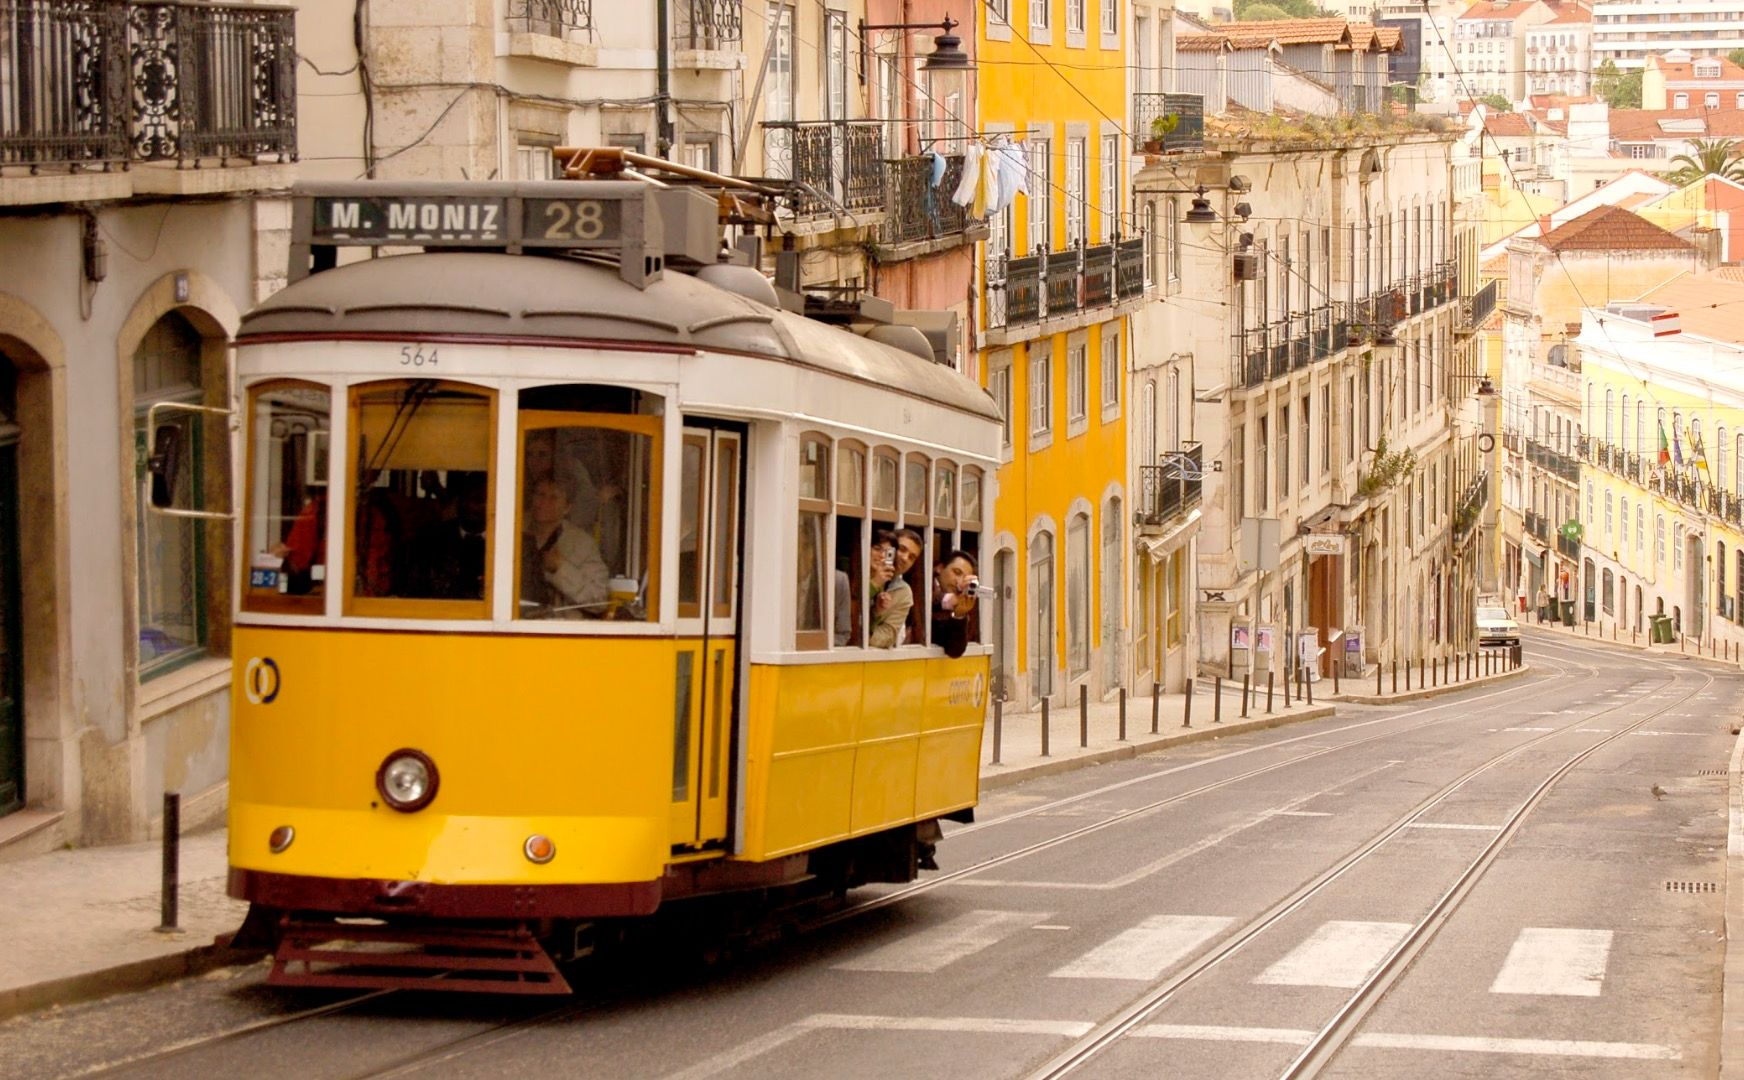 Funiculaire, Lisbonne - Portugal ©Thinkstock